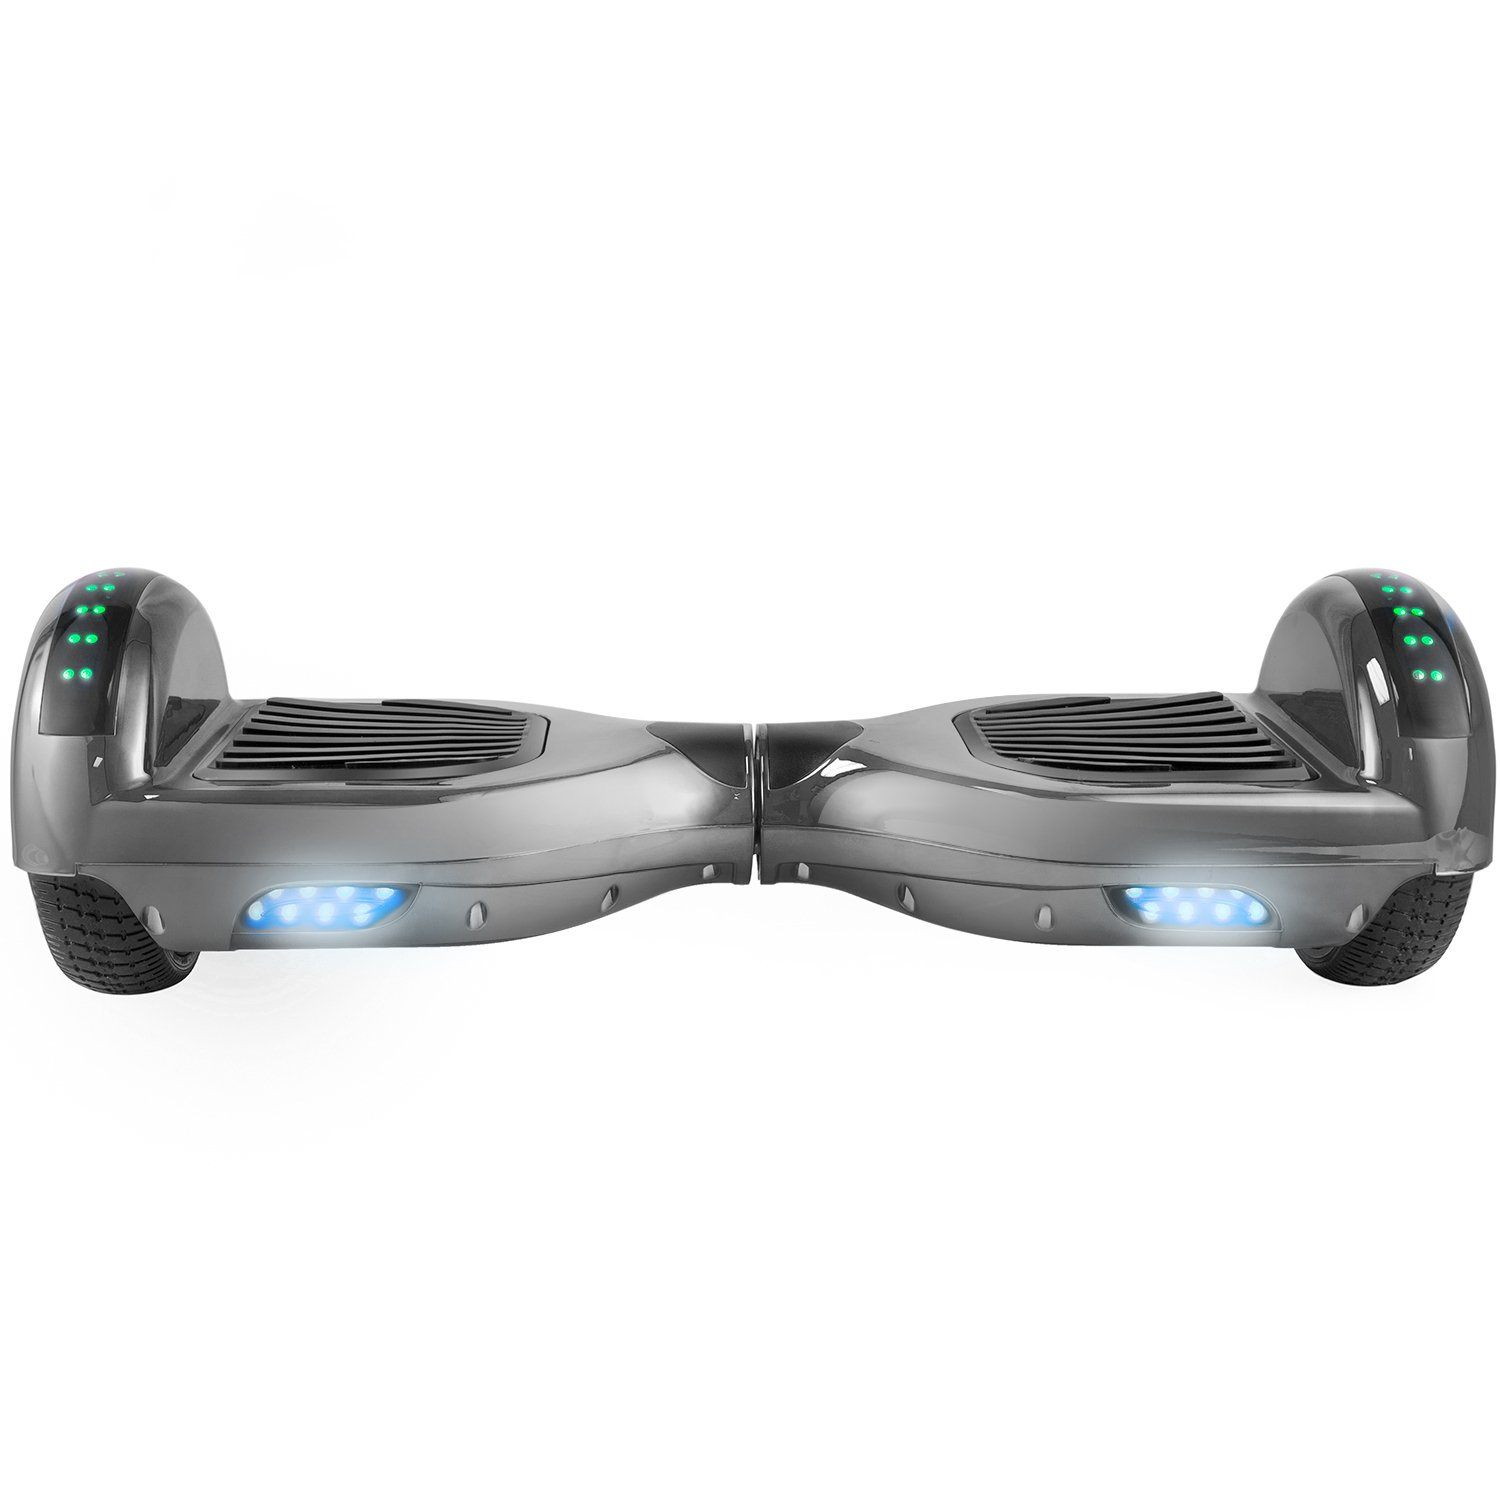 Z1 Plus Black Safe Hoverboard UL2272 certified with Bluetooth Speaker Free Shipping. - HoverBoard 4sale